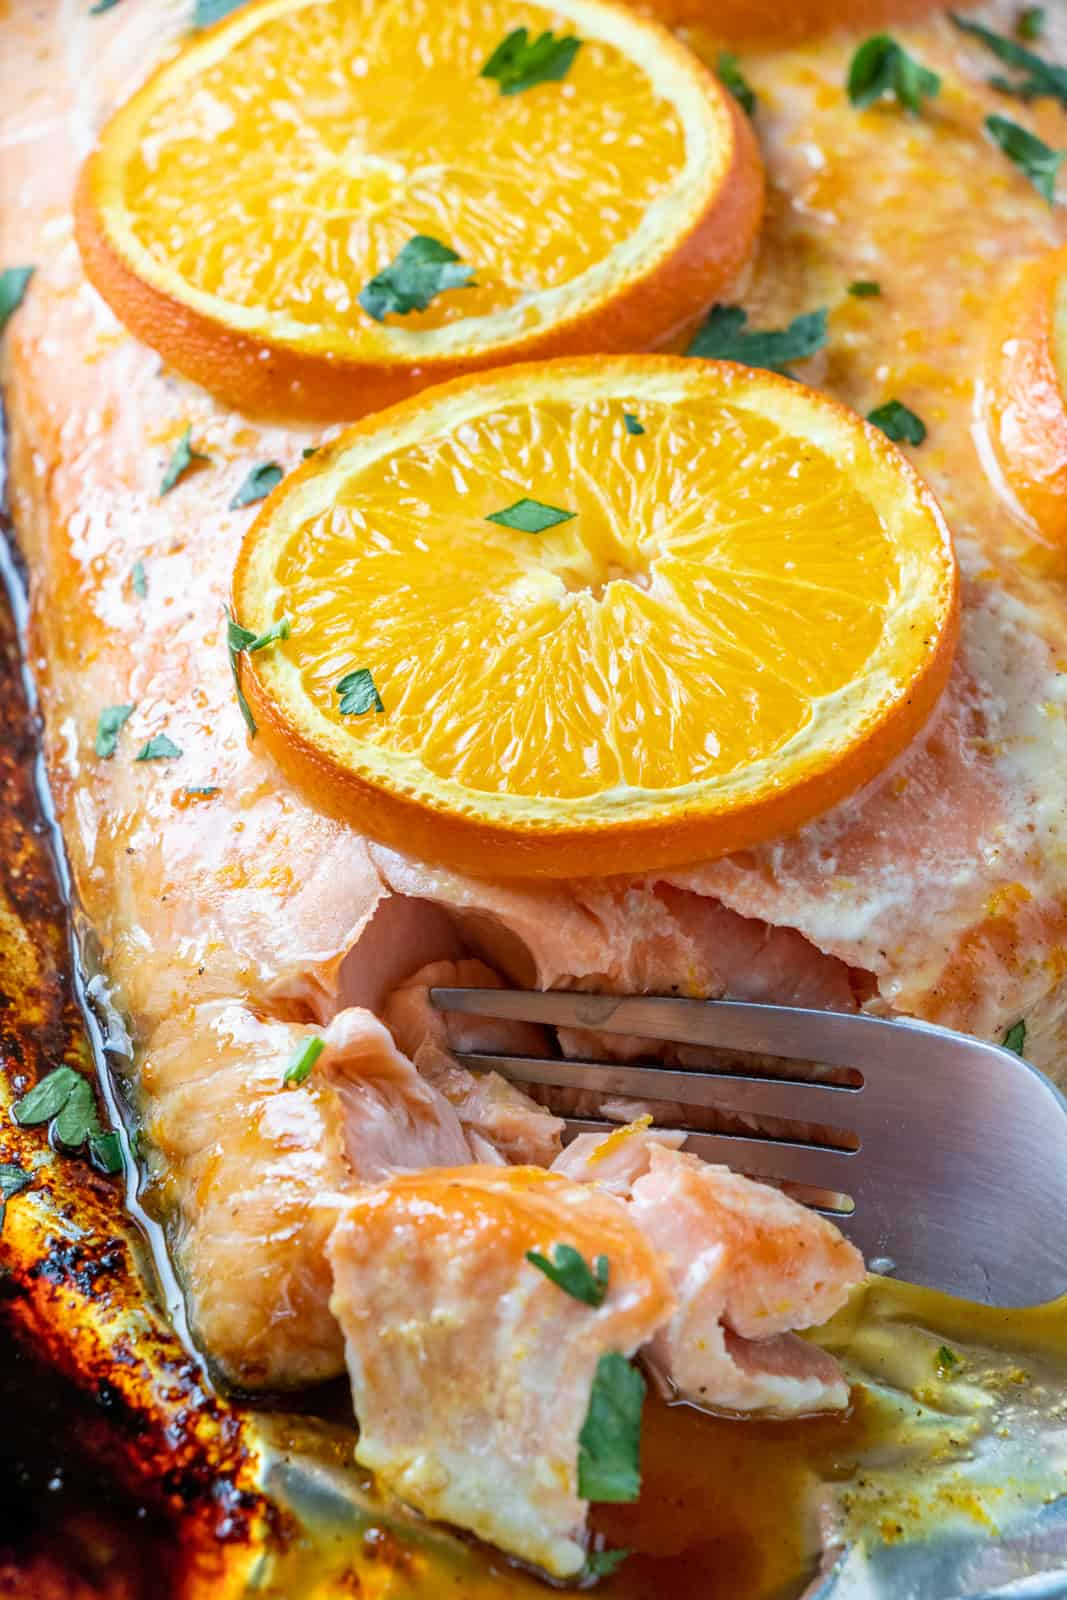 Fork flaking off salmon pieces